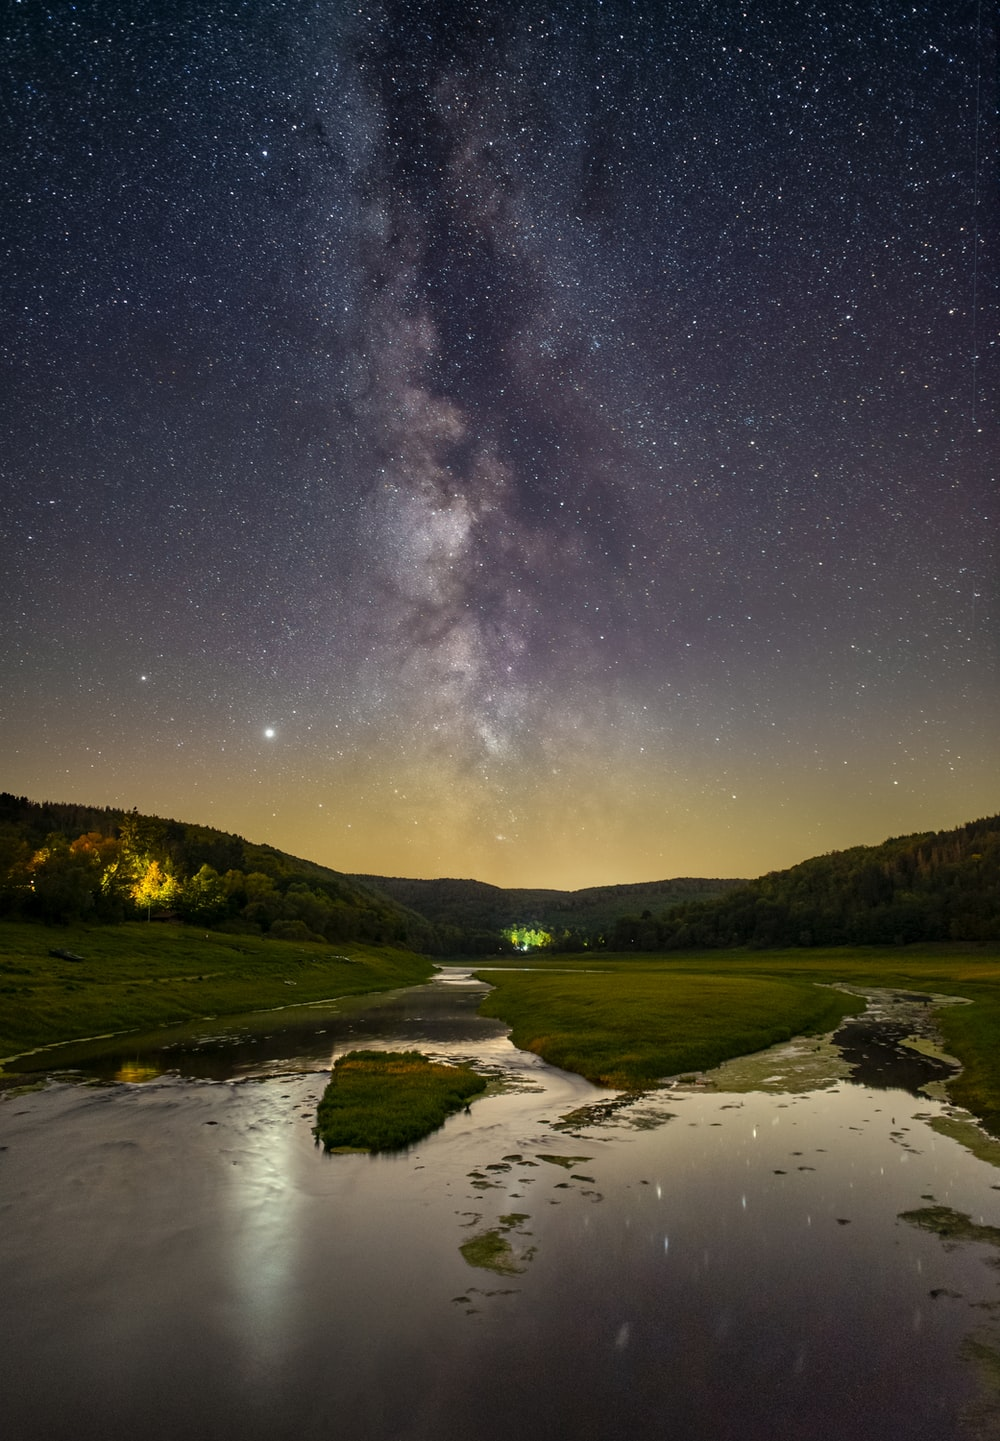 lake in the middle of green grass field under starry night